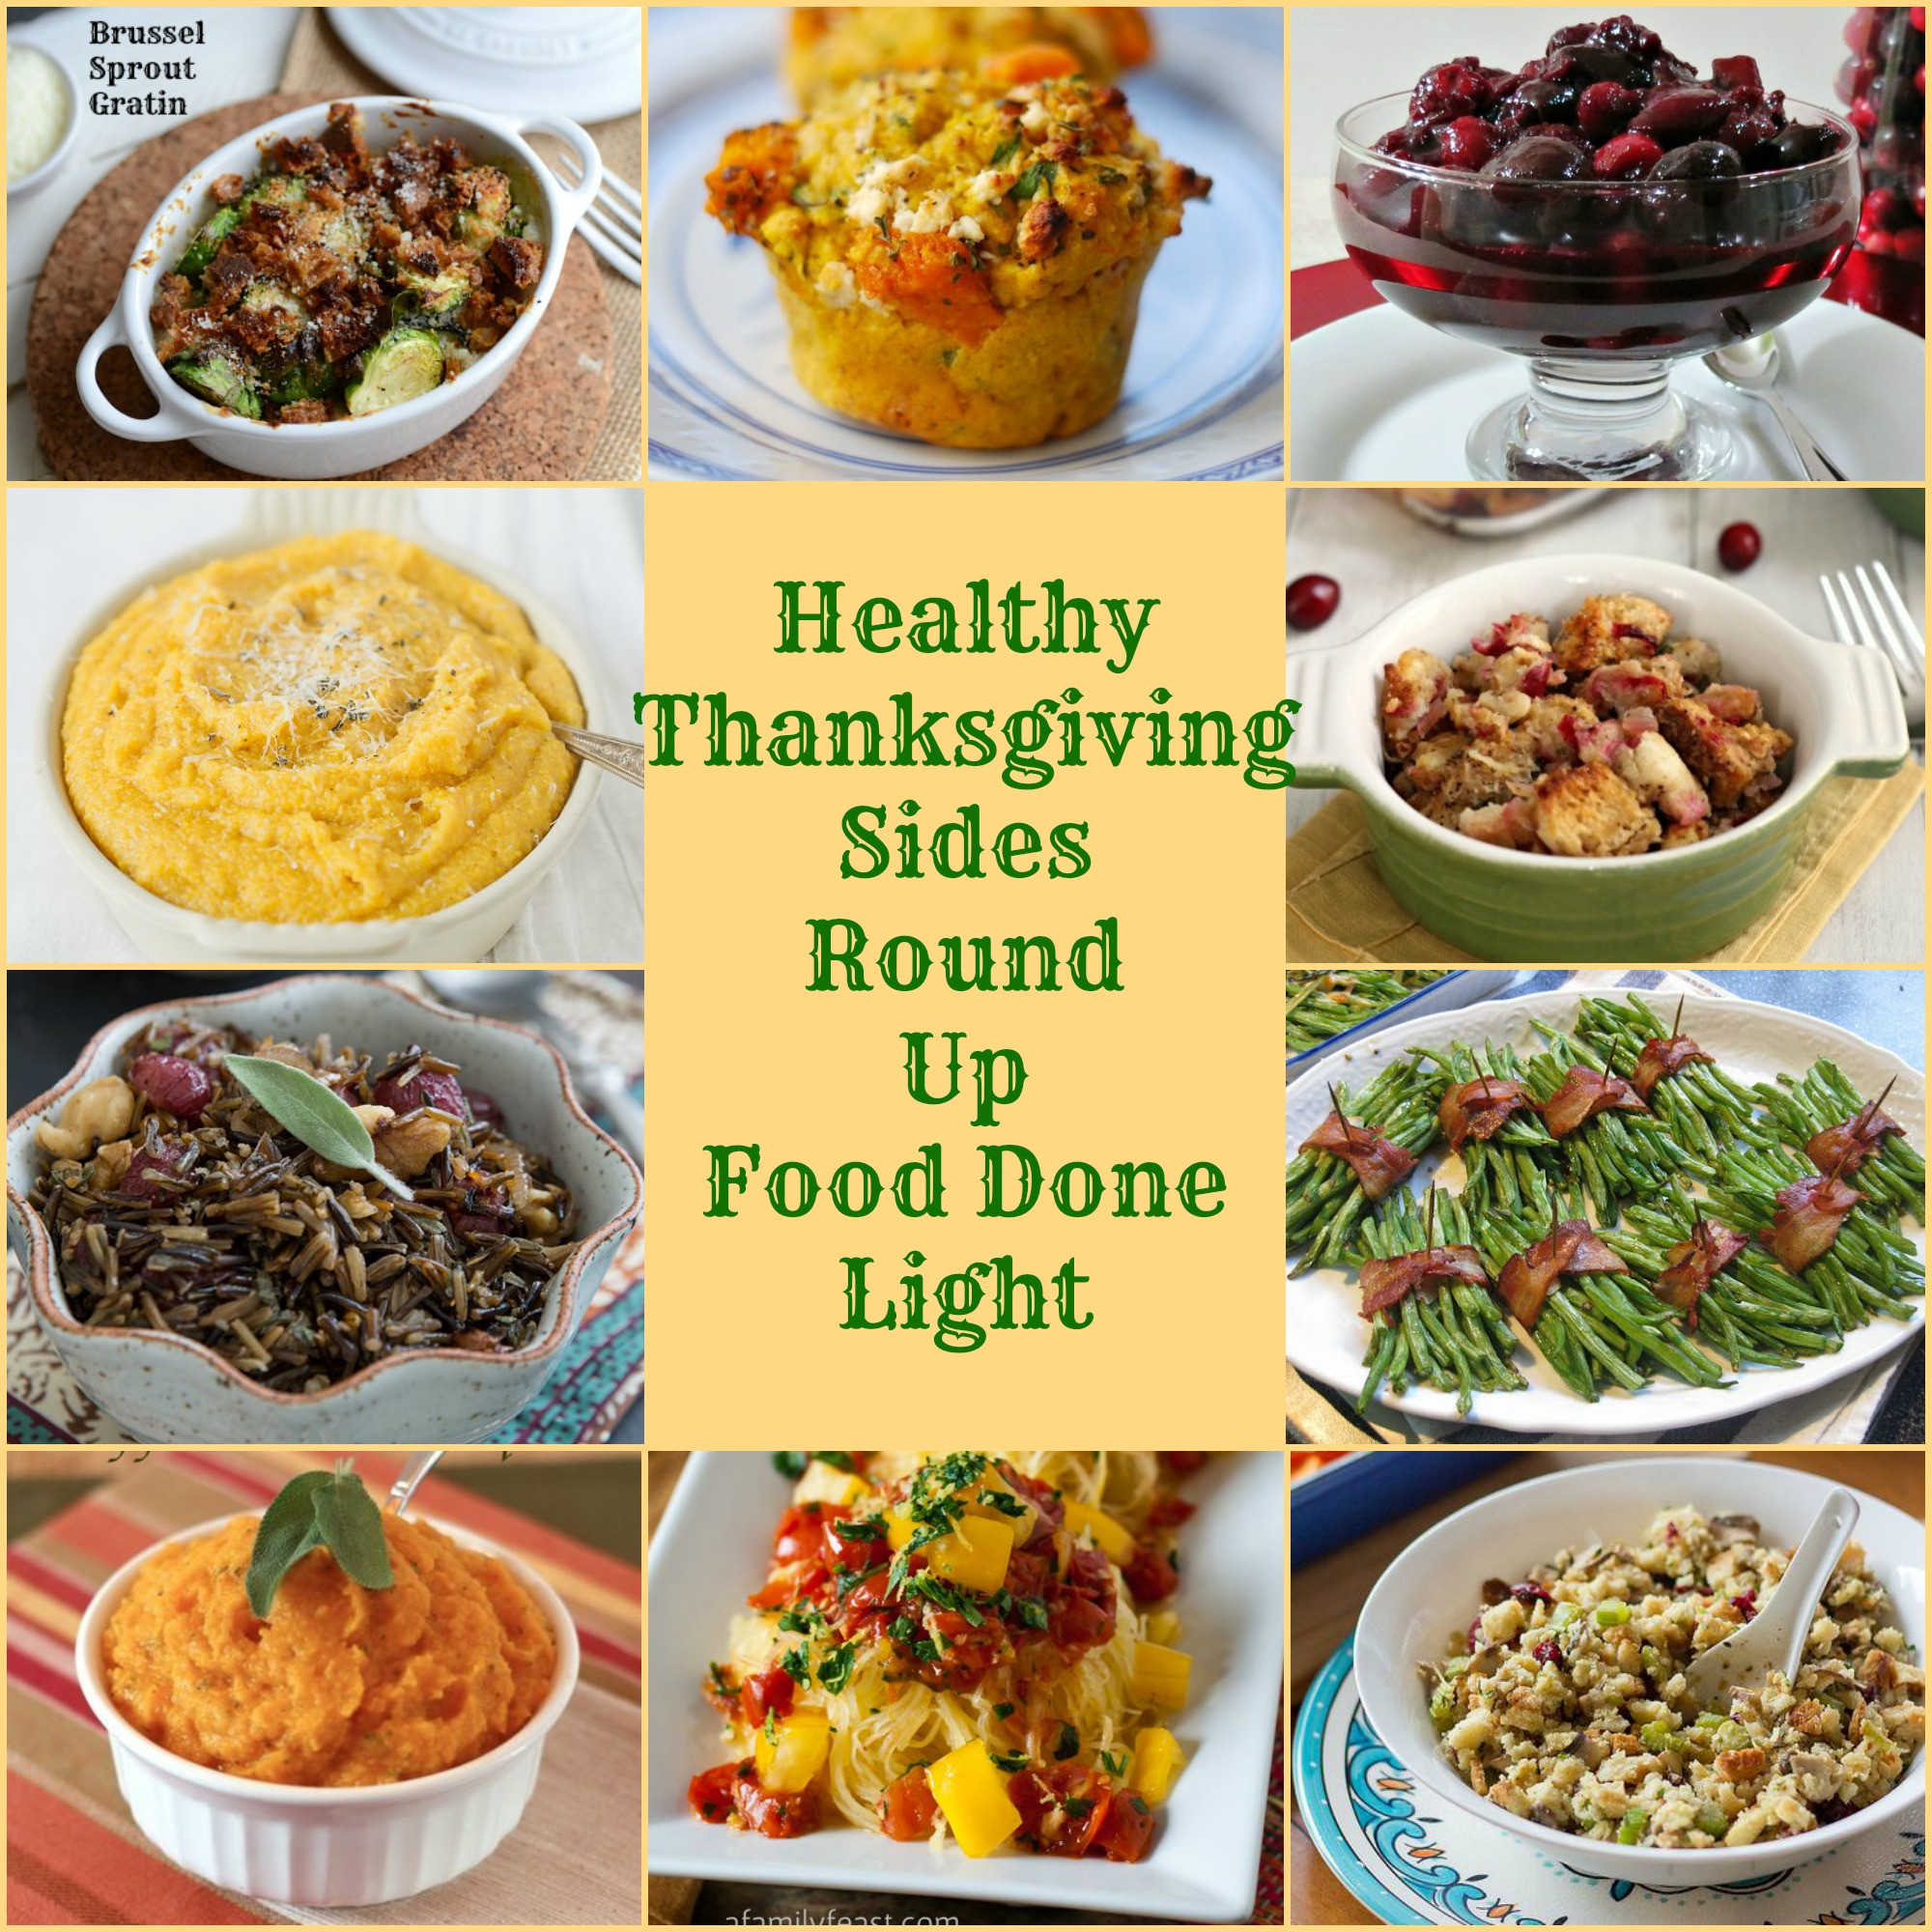 Healthy Thanksgiving Sides  Healthy Thanksgiving Sides Recipe Round Up Food Done Light